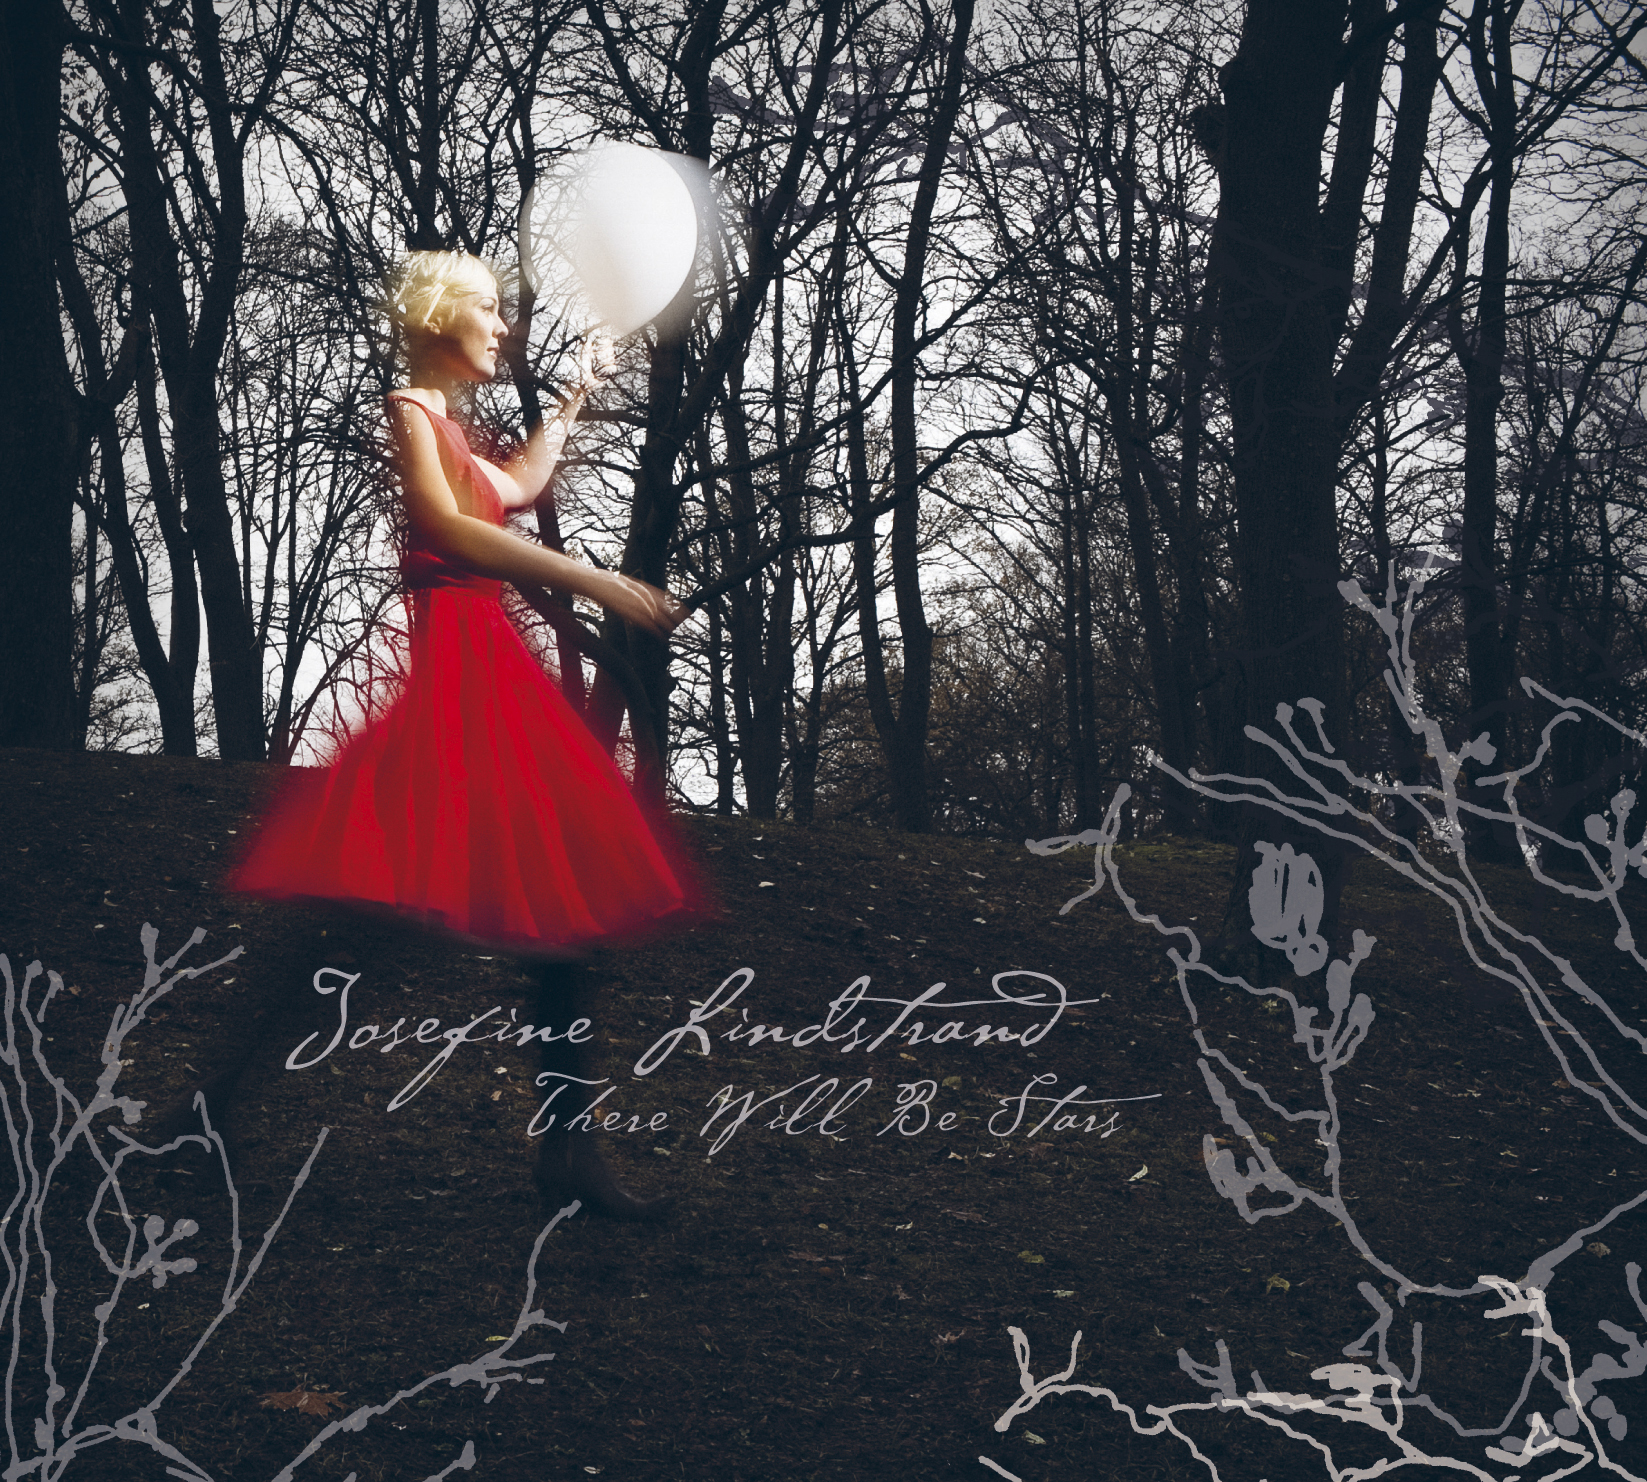 Josefine Lindstrand: There Will Be Stars